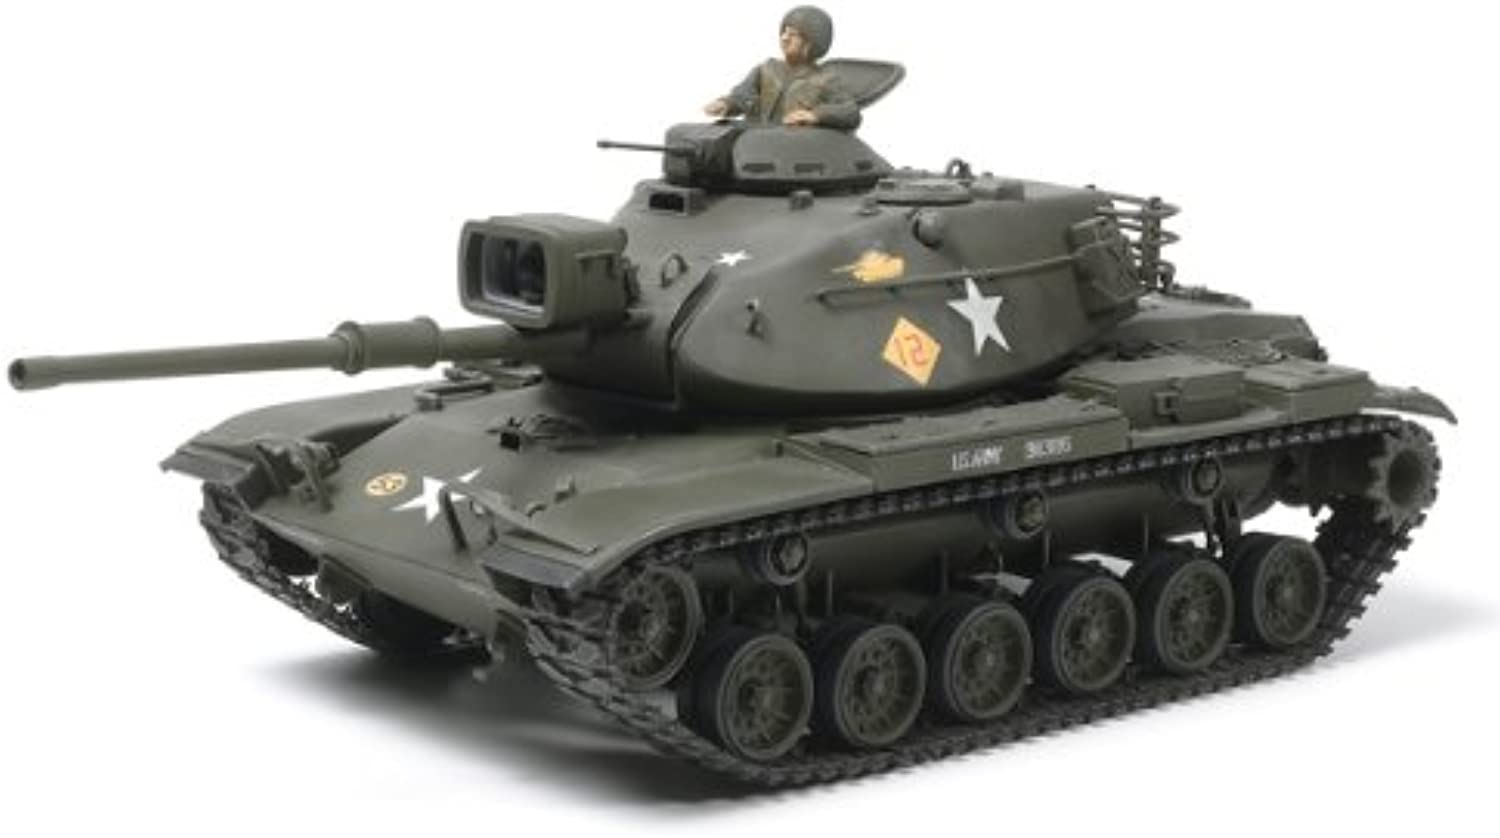 Scale Limited Series 1 35 US Army M60A1 tanks 25 166